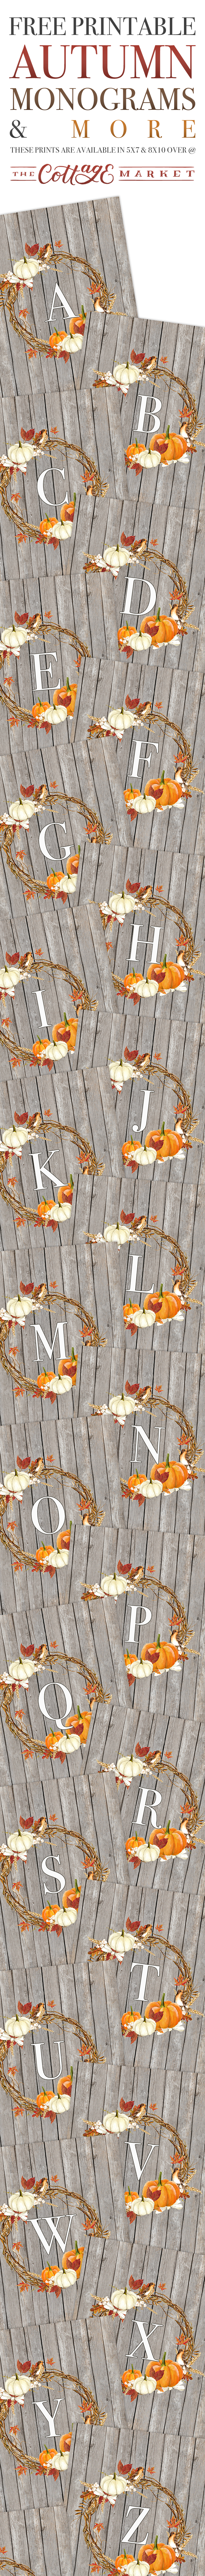 http://thecottagemarket.com/wp-content/uploads/2017/09/TCM-Fall-Monograms-TOWER-1.jpg